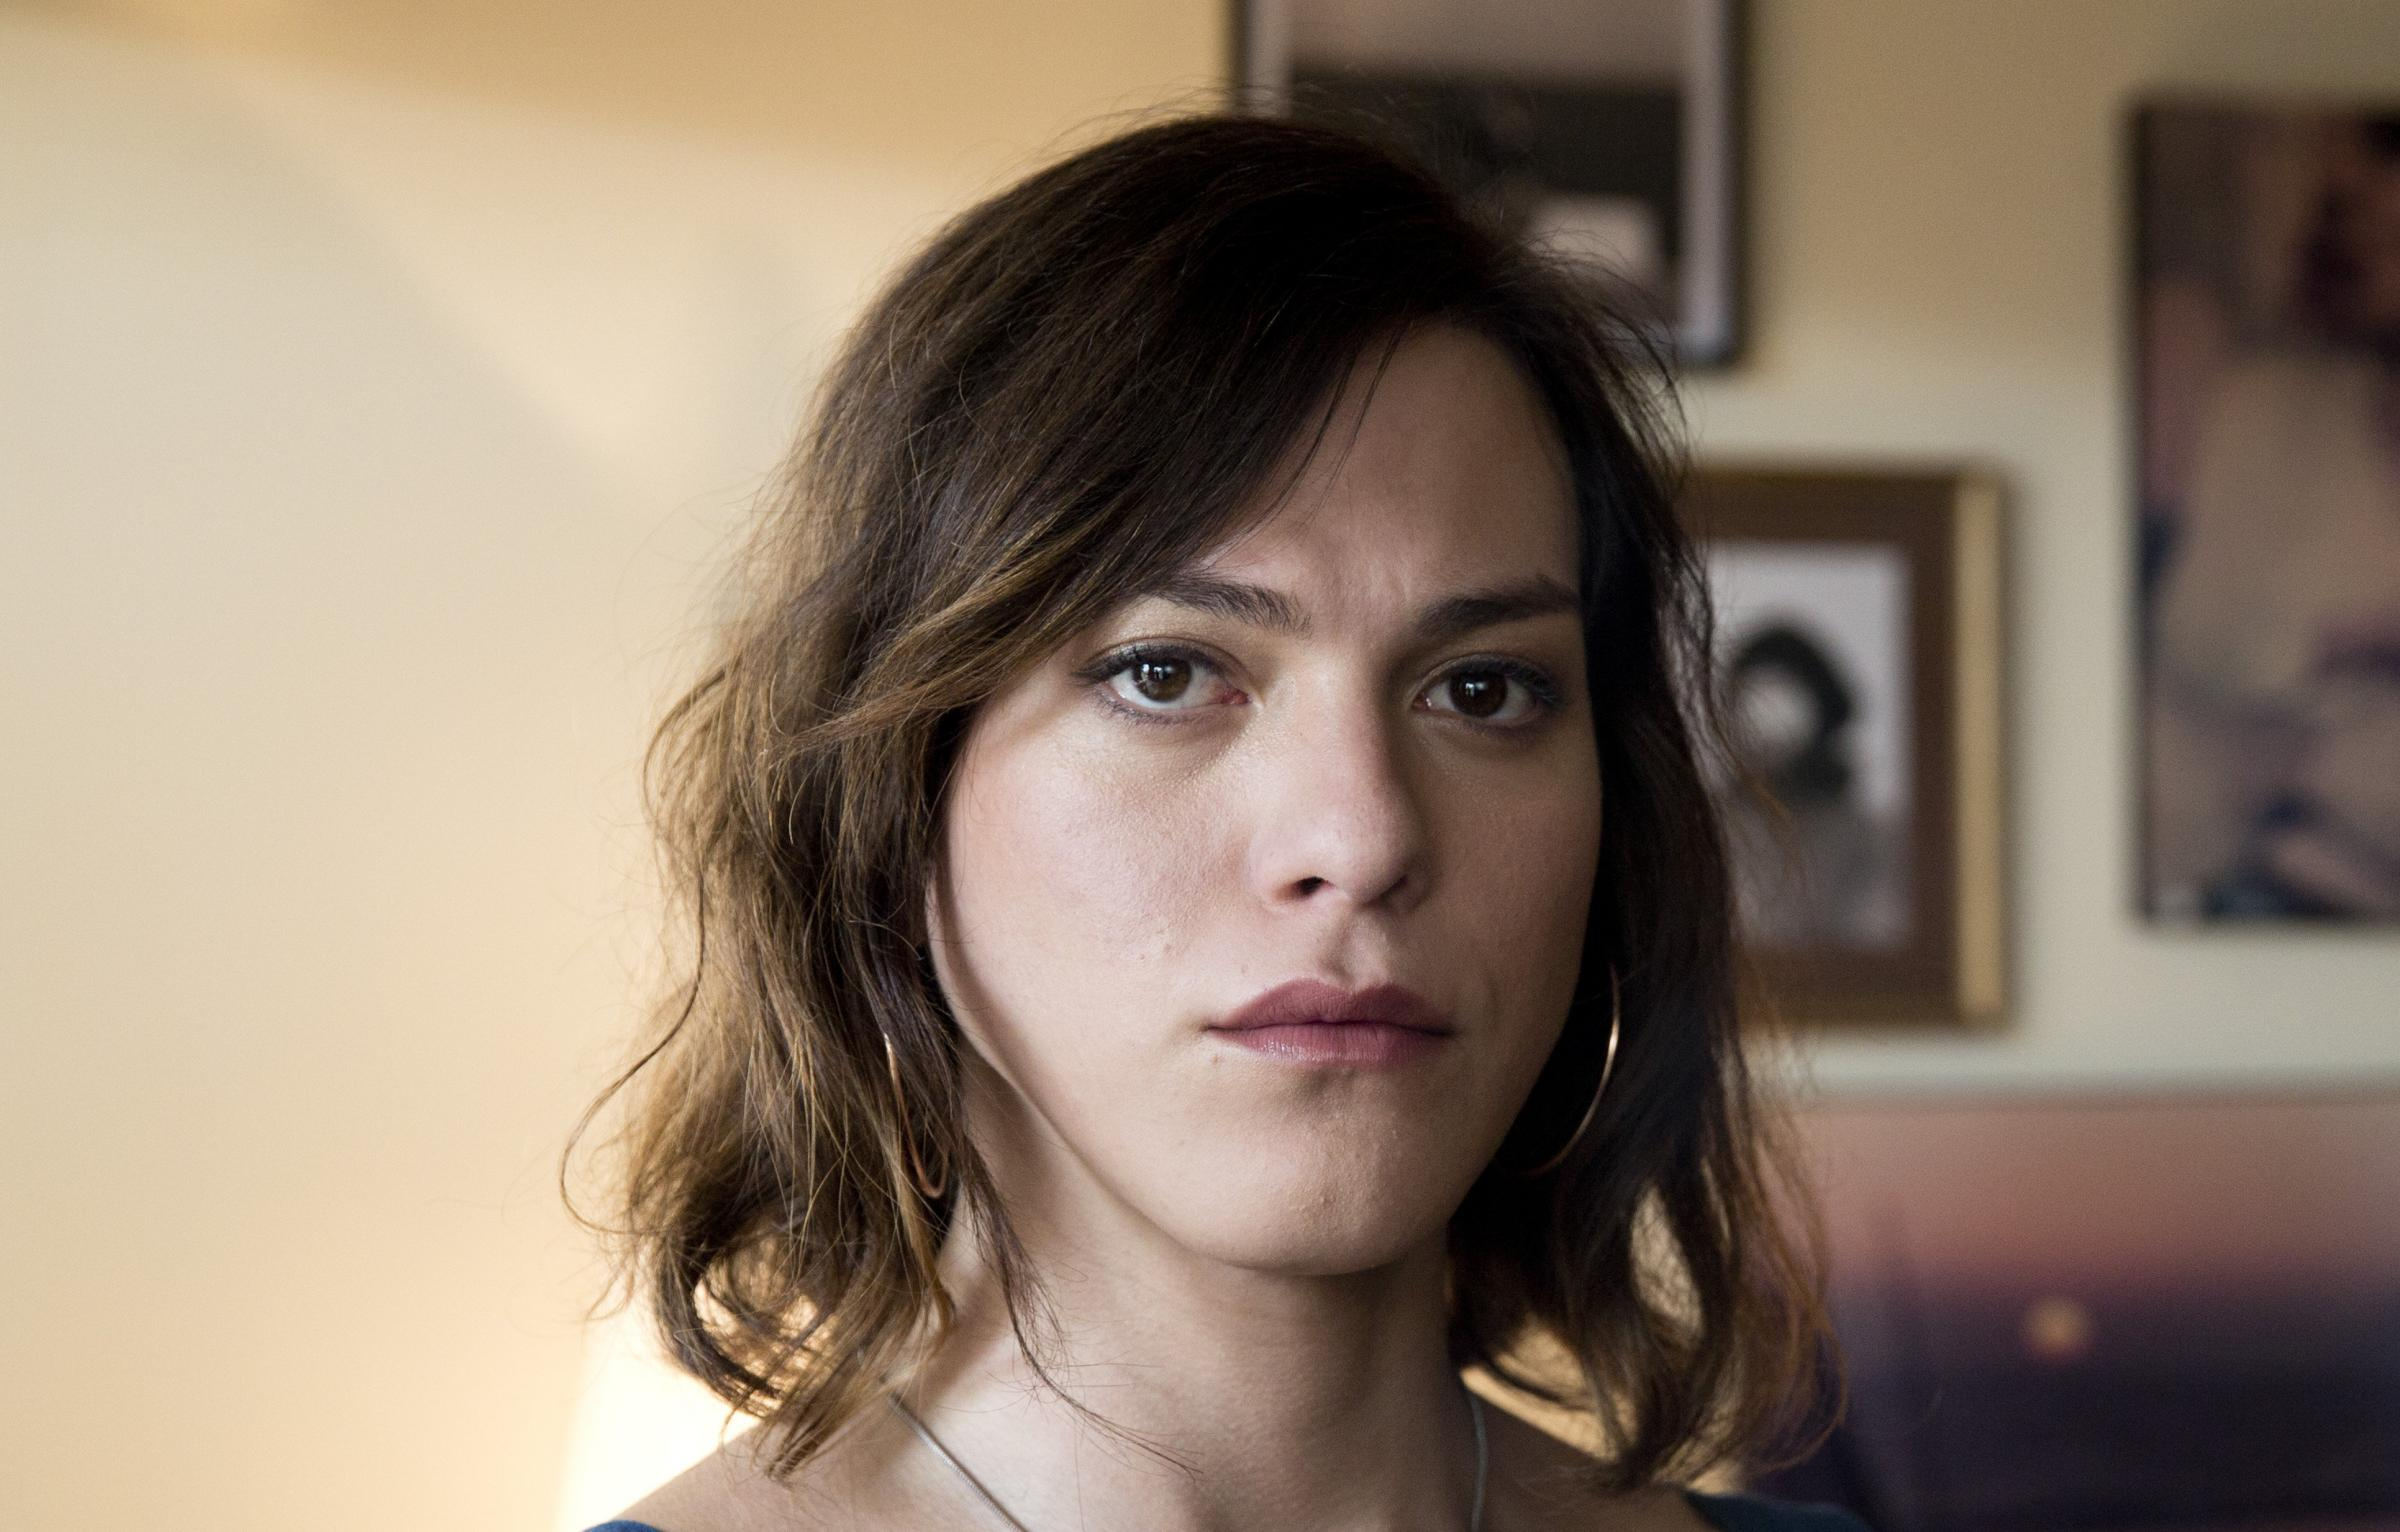 Daniela Vega stars in best foreign language film Oscar contender A Fantastic Woman which will be showing in Scotland for the first time